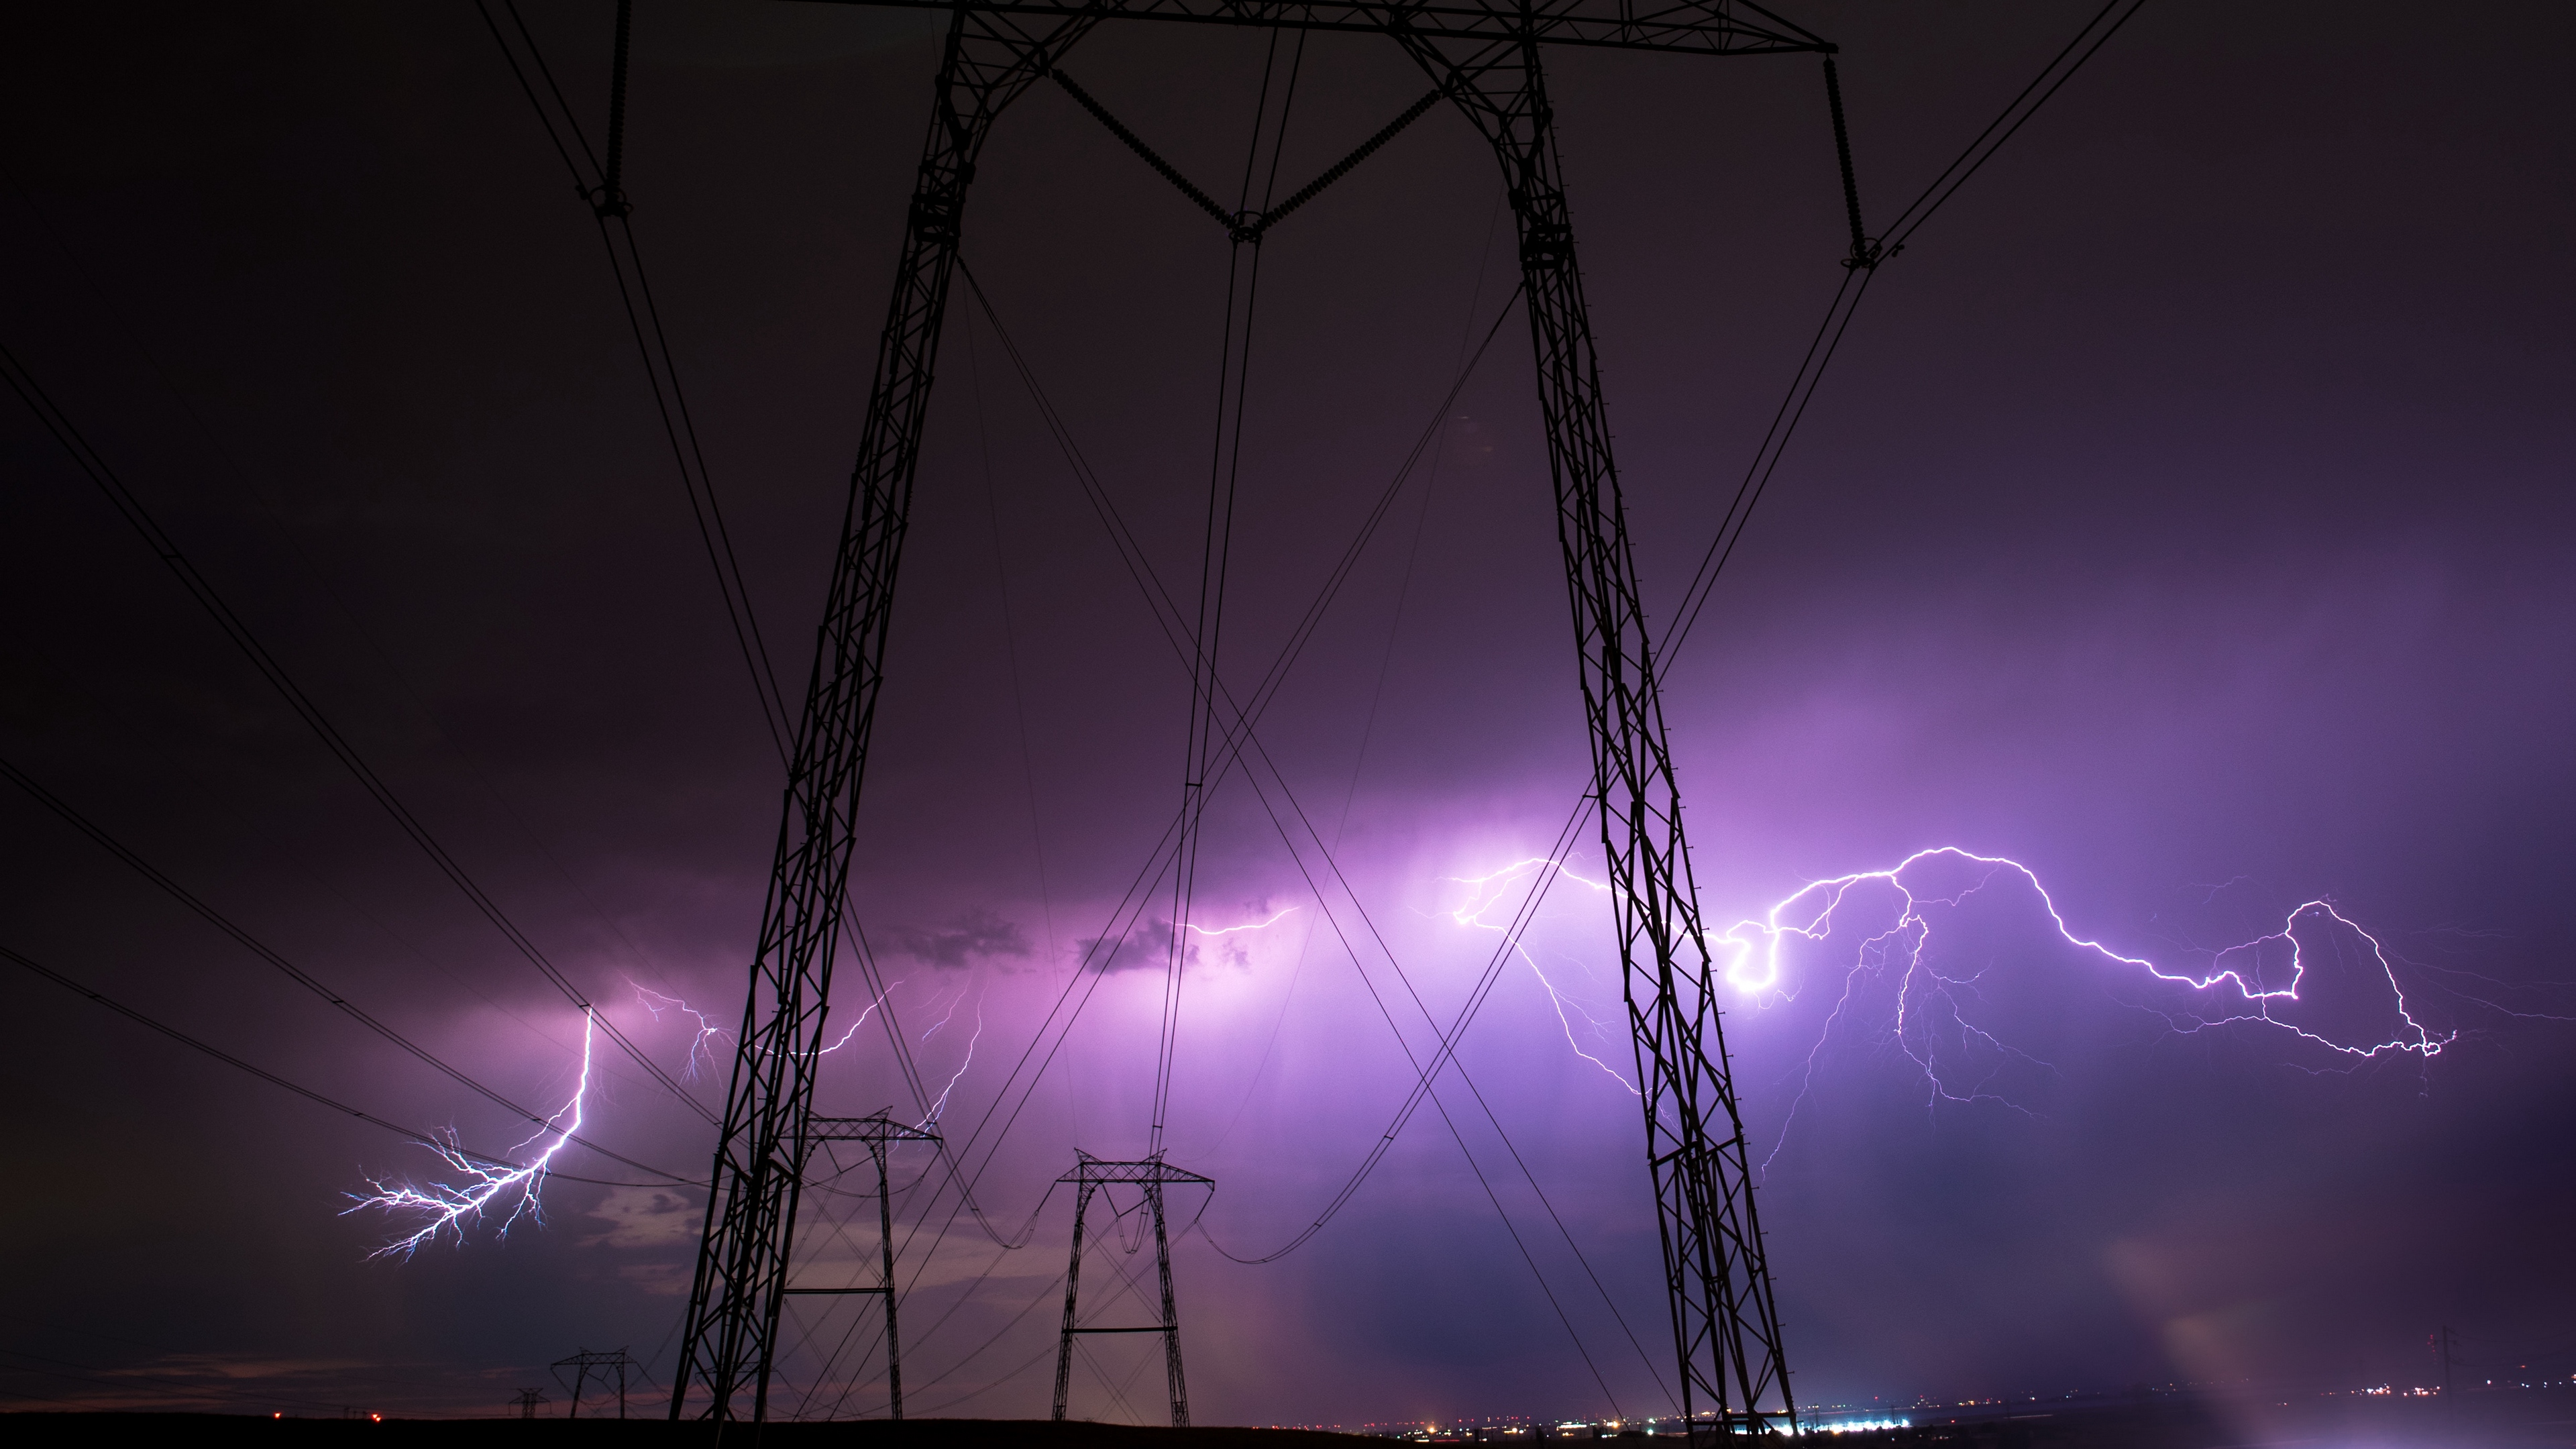 thunderstorm wires night cloudy sky 4k 1541115012 - thunderstorm, wires, night, cloudy, sky 4k - wires, thunderstorm, Night